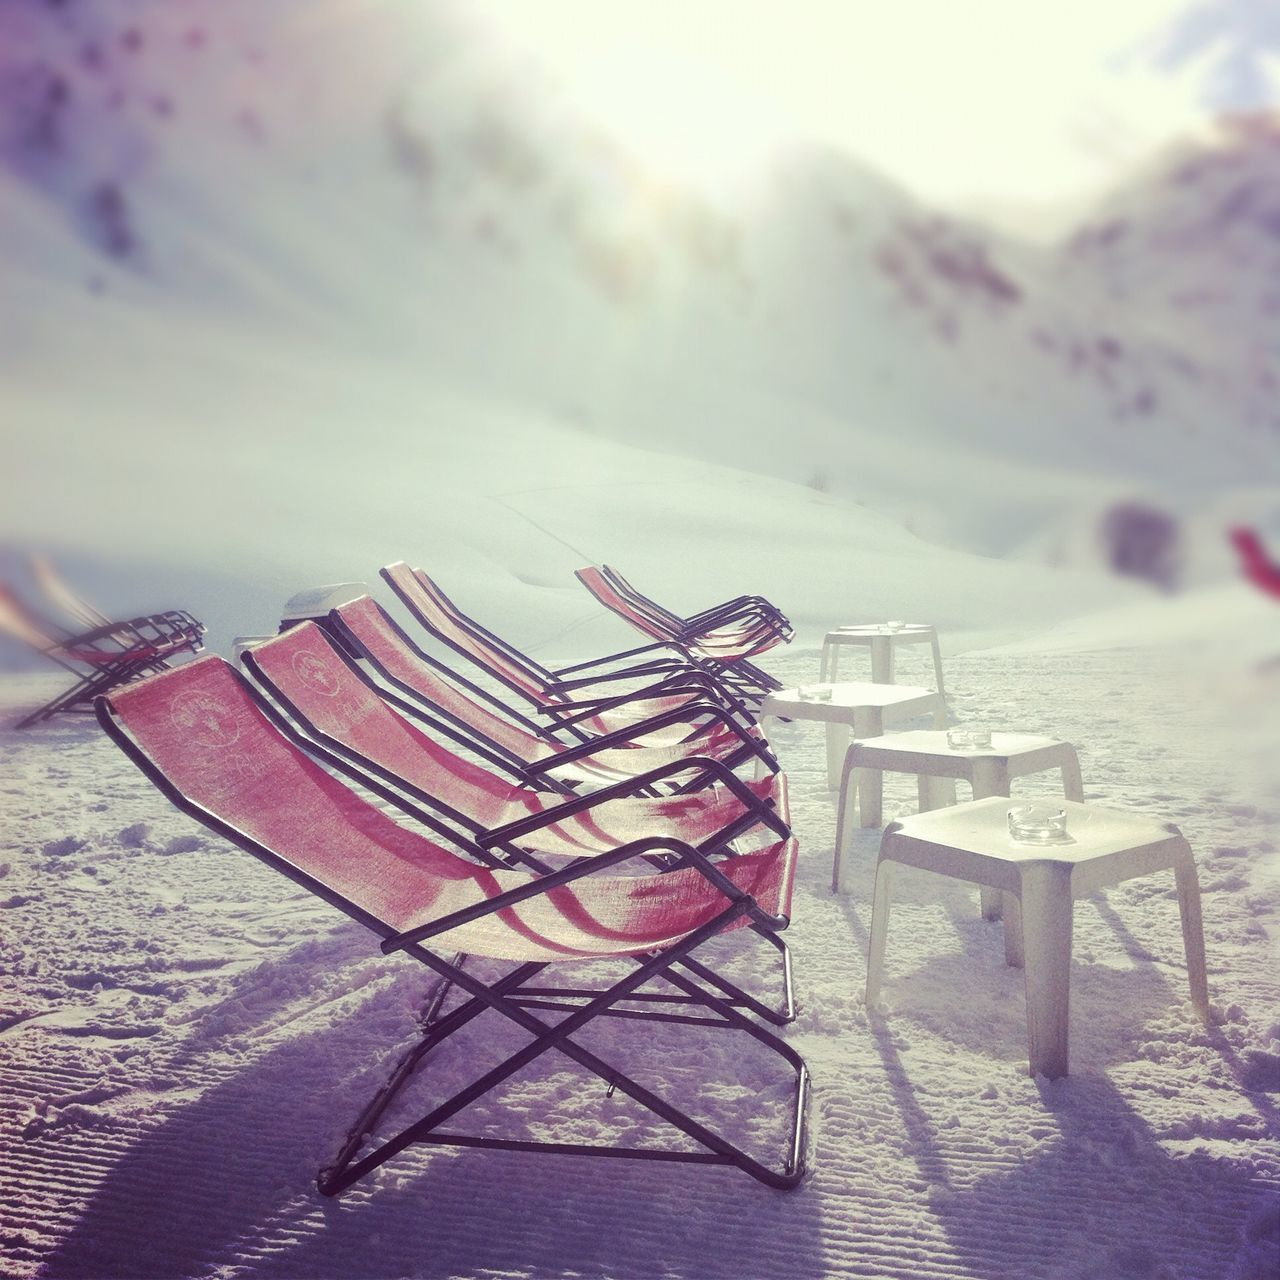 Deck chairs on snow covered landscape